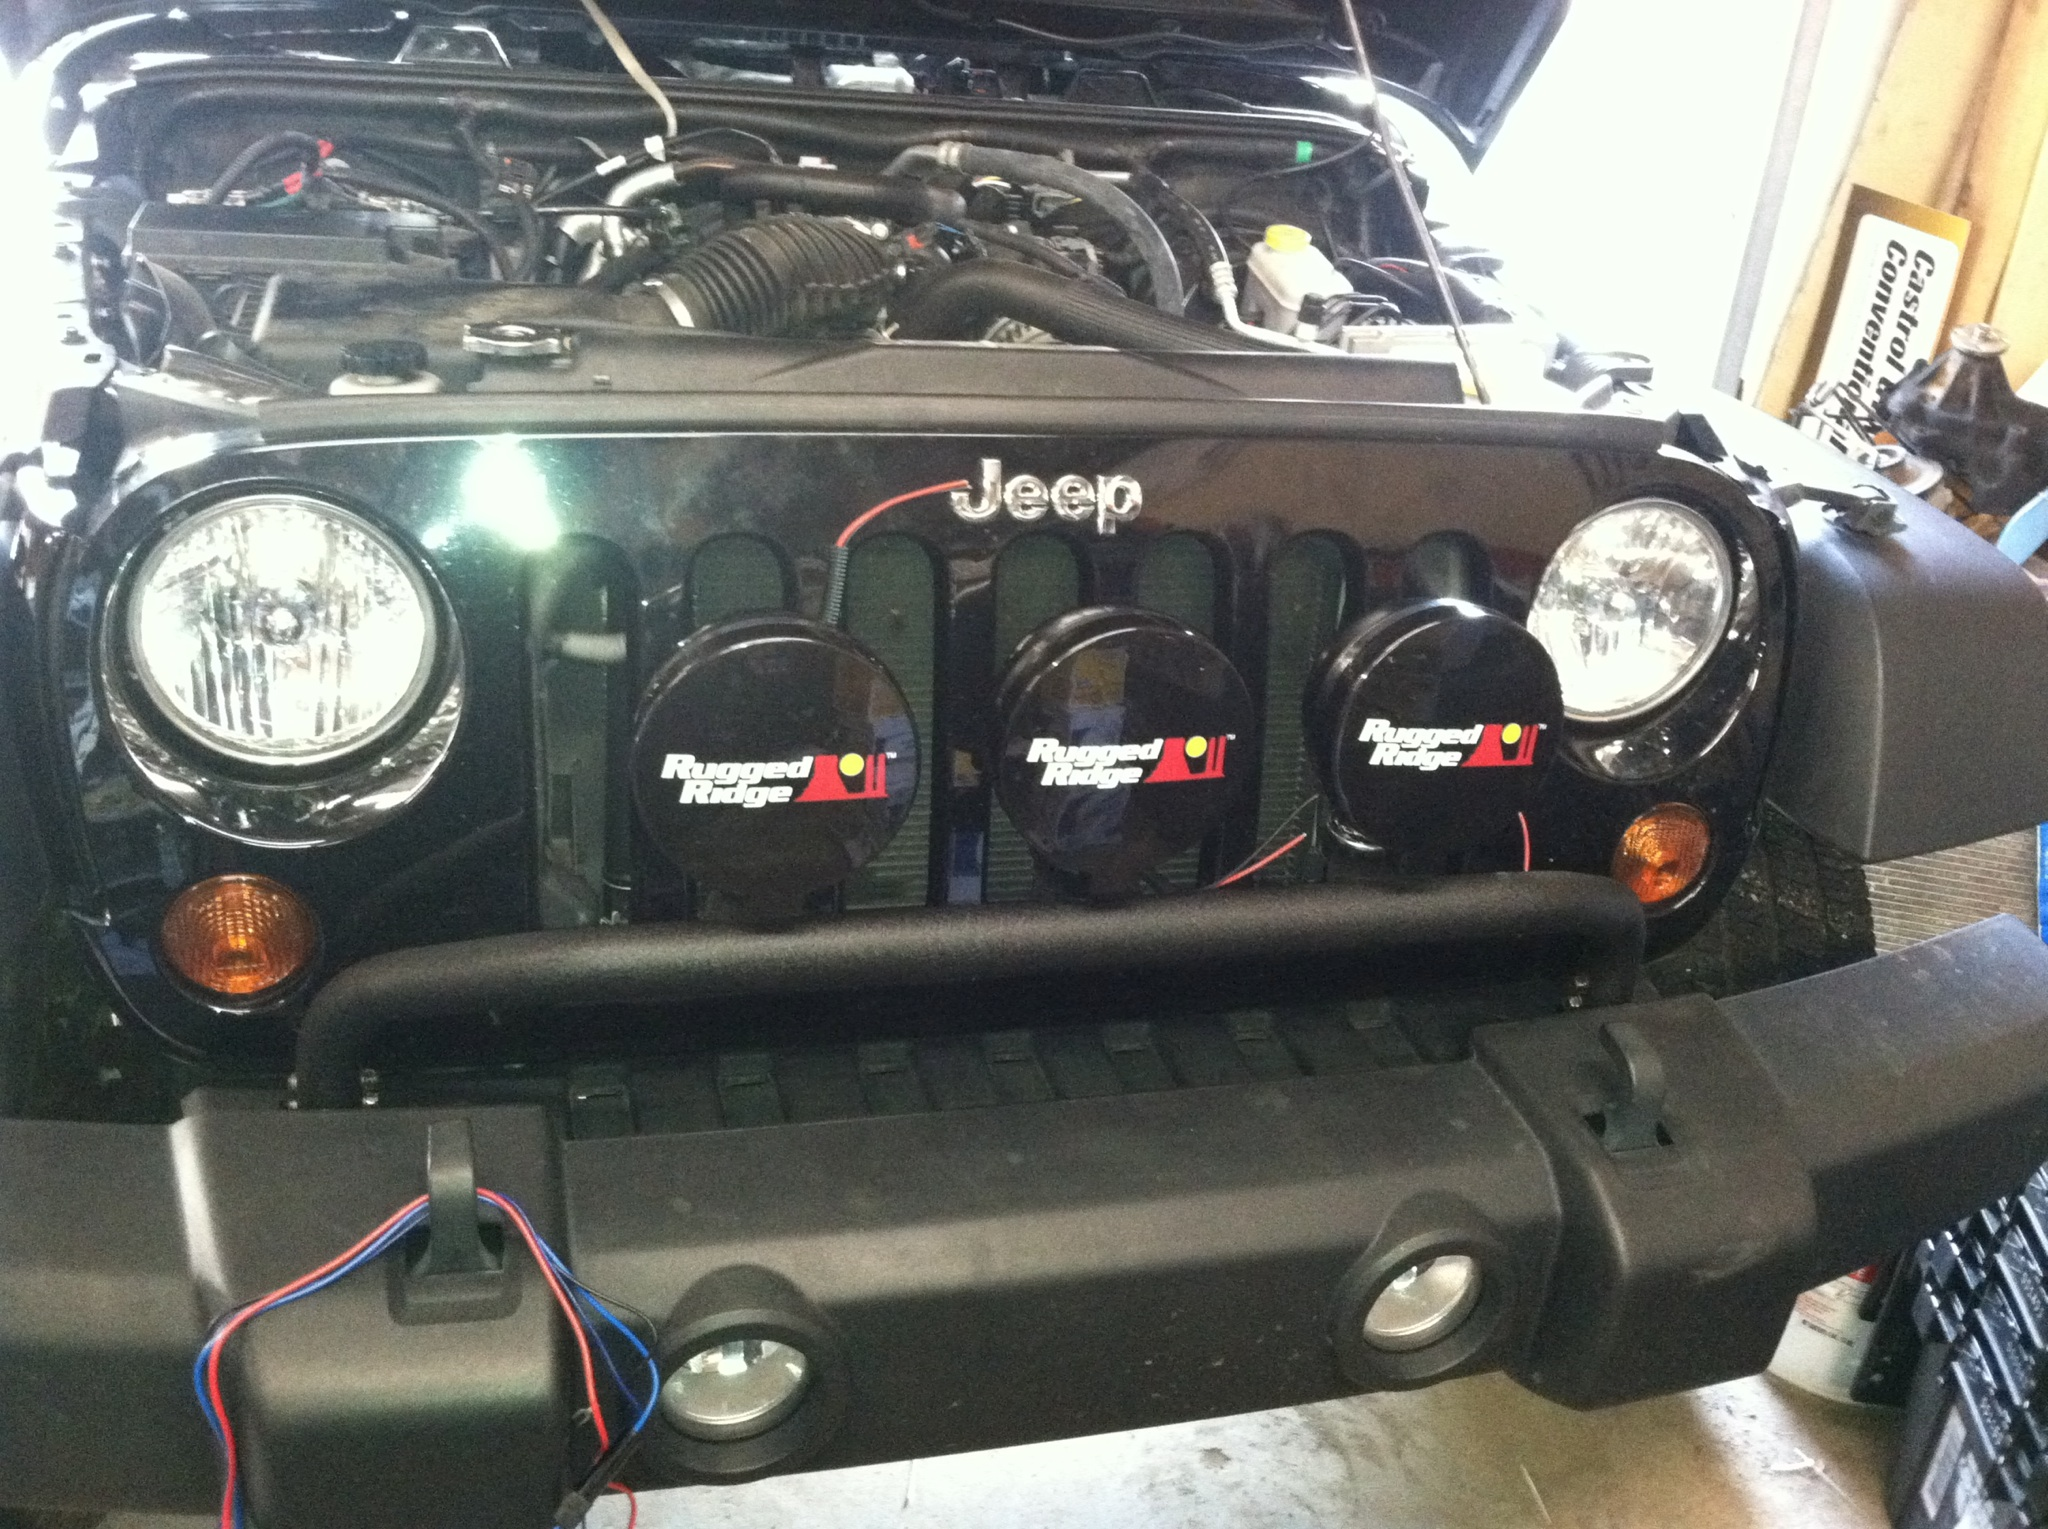 Mopar Light Bar Rugged Ridge Off Road Install On 2010 Jeep Cj Harness The Wiring They Send With It Is Nice But A Little Short We Had To Extend Wires Make Reach Inside I Cant Imagine Any Vehicle Being Much